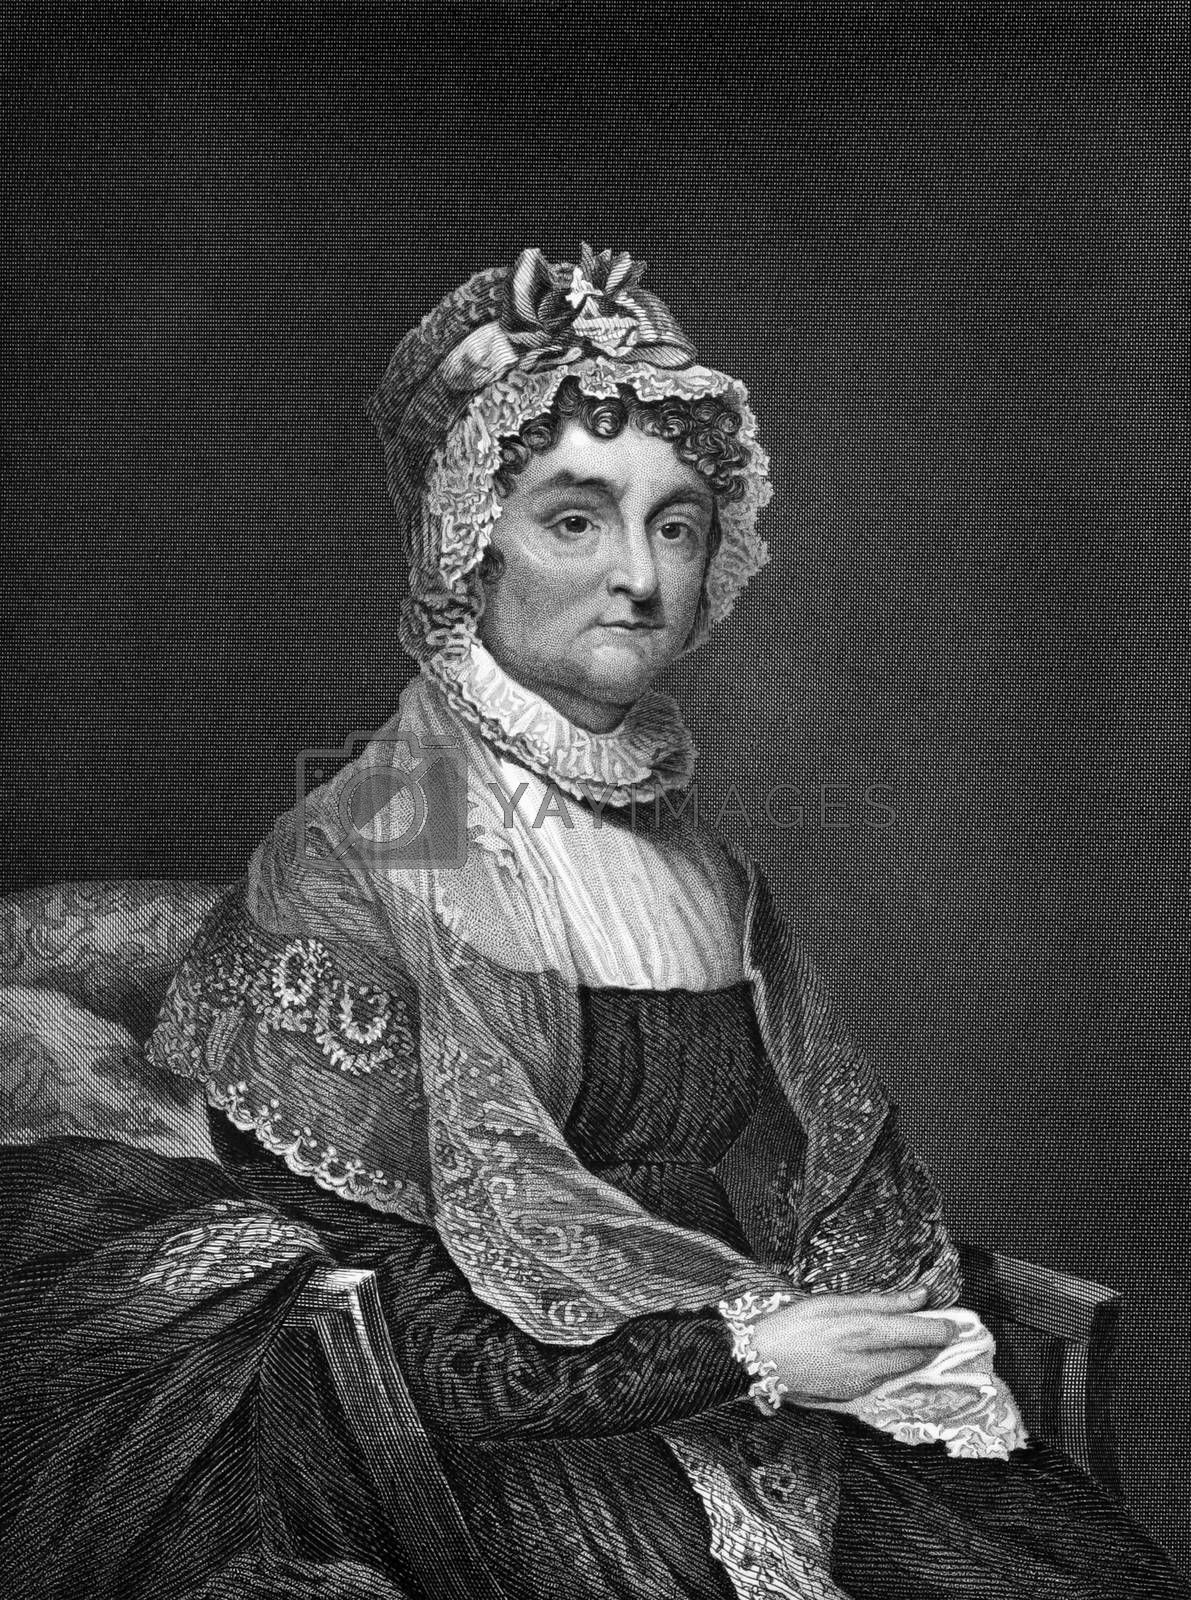 Abigail Adams (1712-1786) on engraving from 1873. Wife of John Adams president of the USA. Engraved by unknown artist and published in ''Portrait Gallery of Eminent Men and Women with Biographies'',USA,1873.